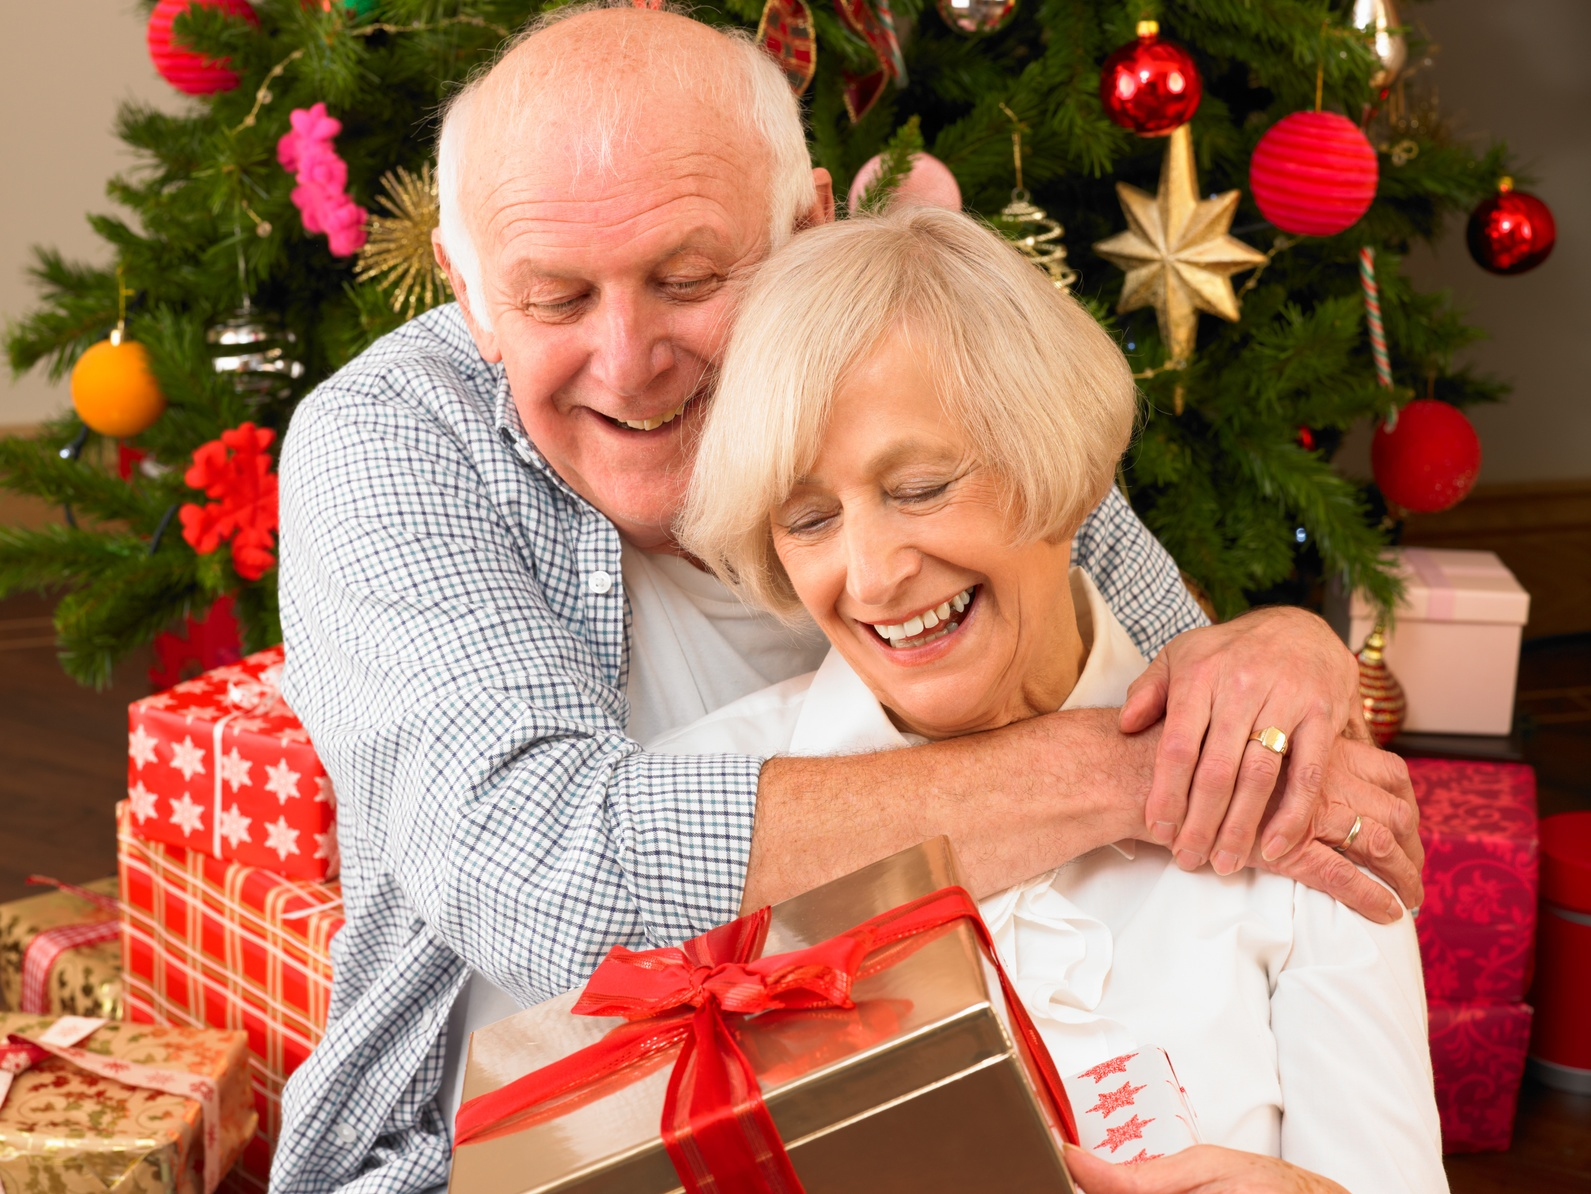 Christmas Senior Couple.jpg